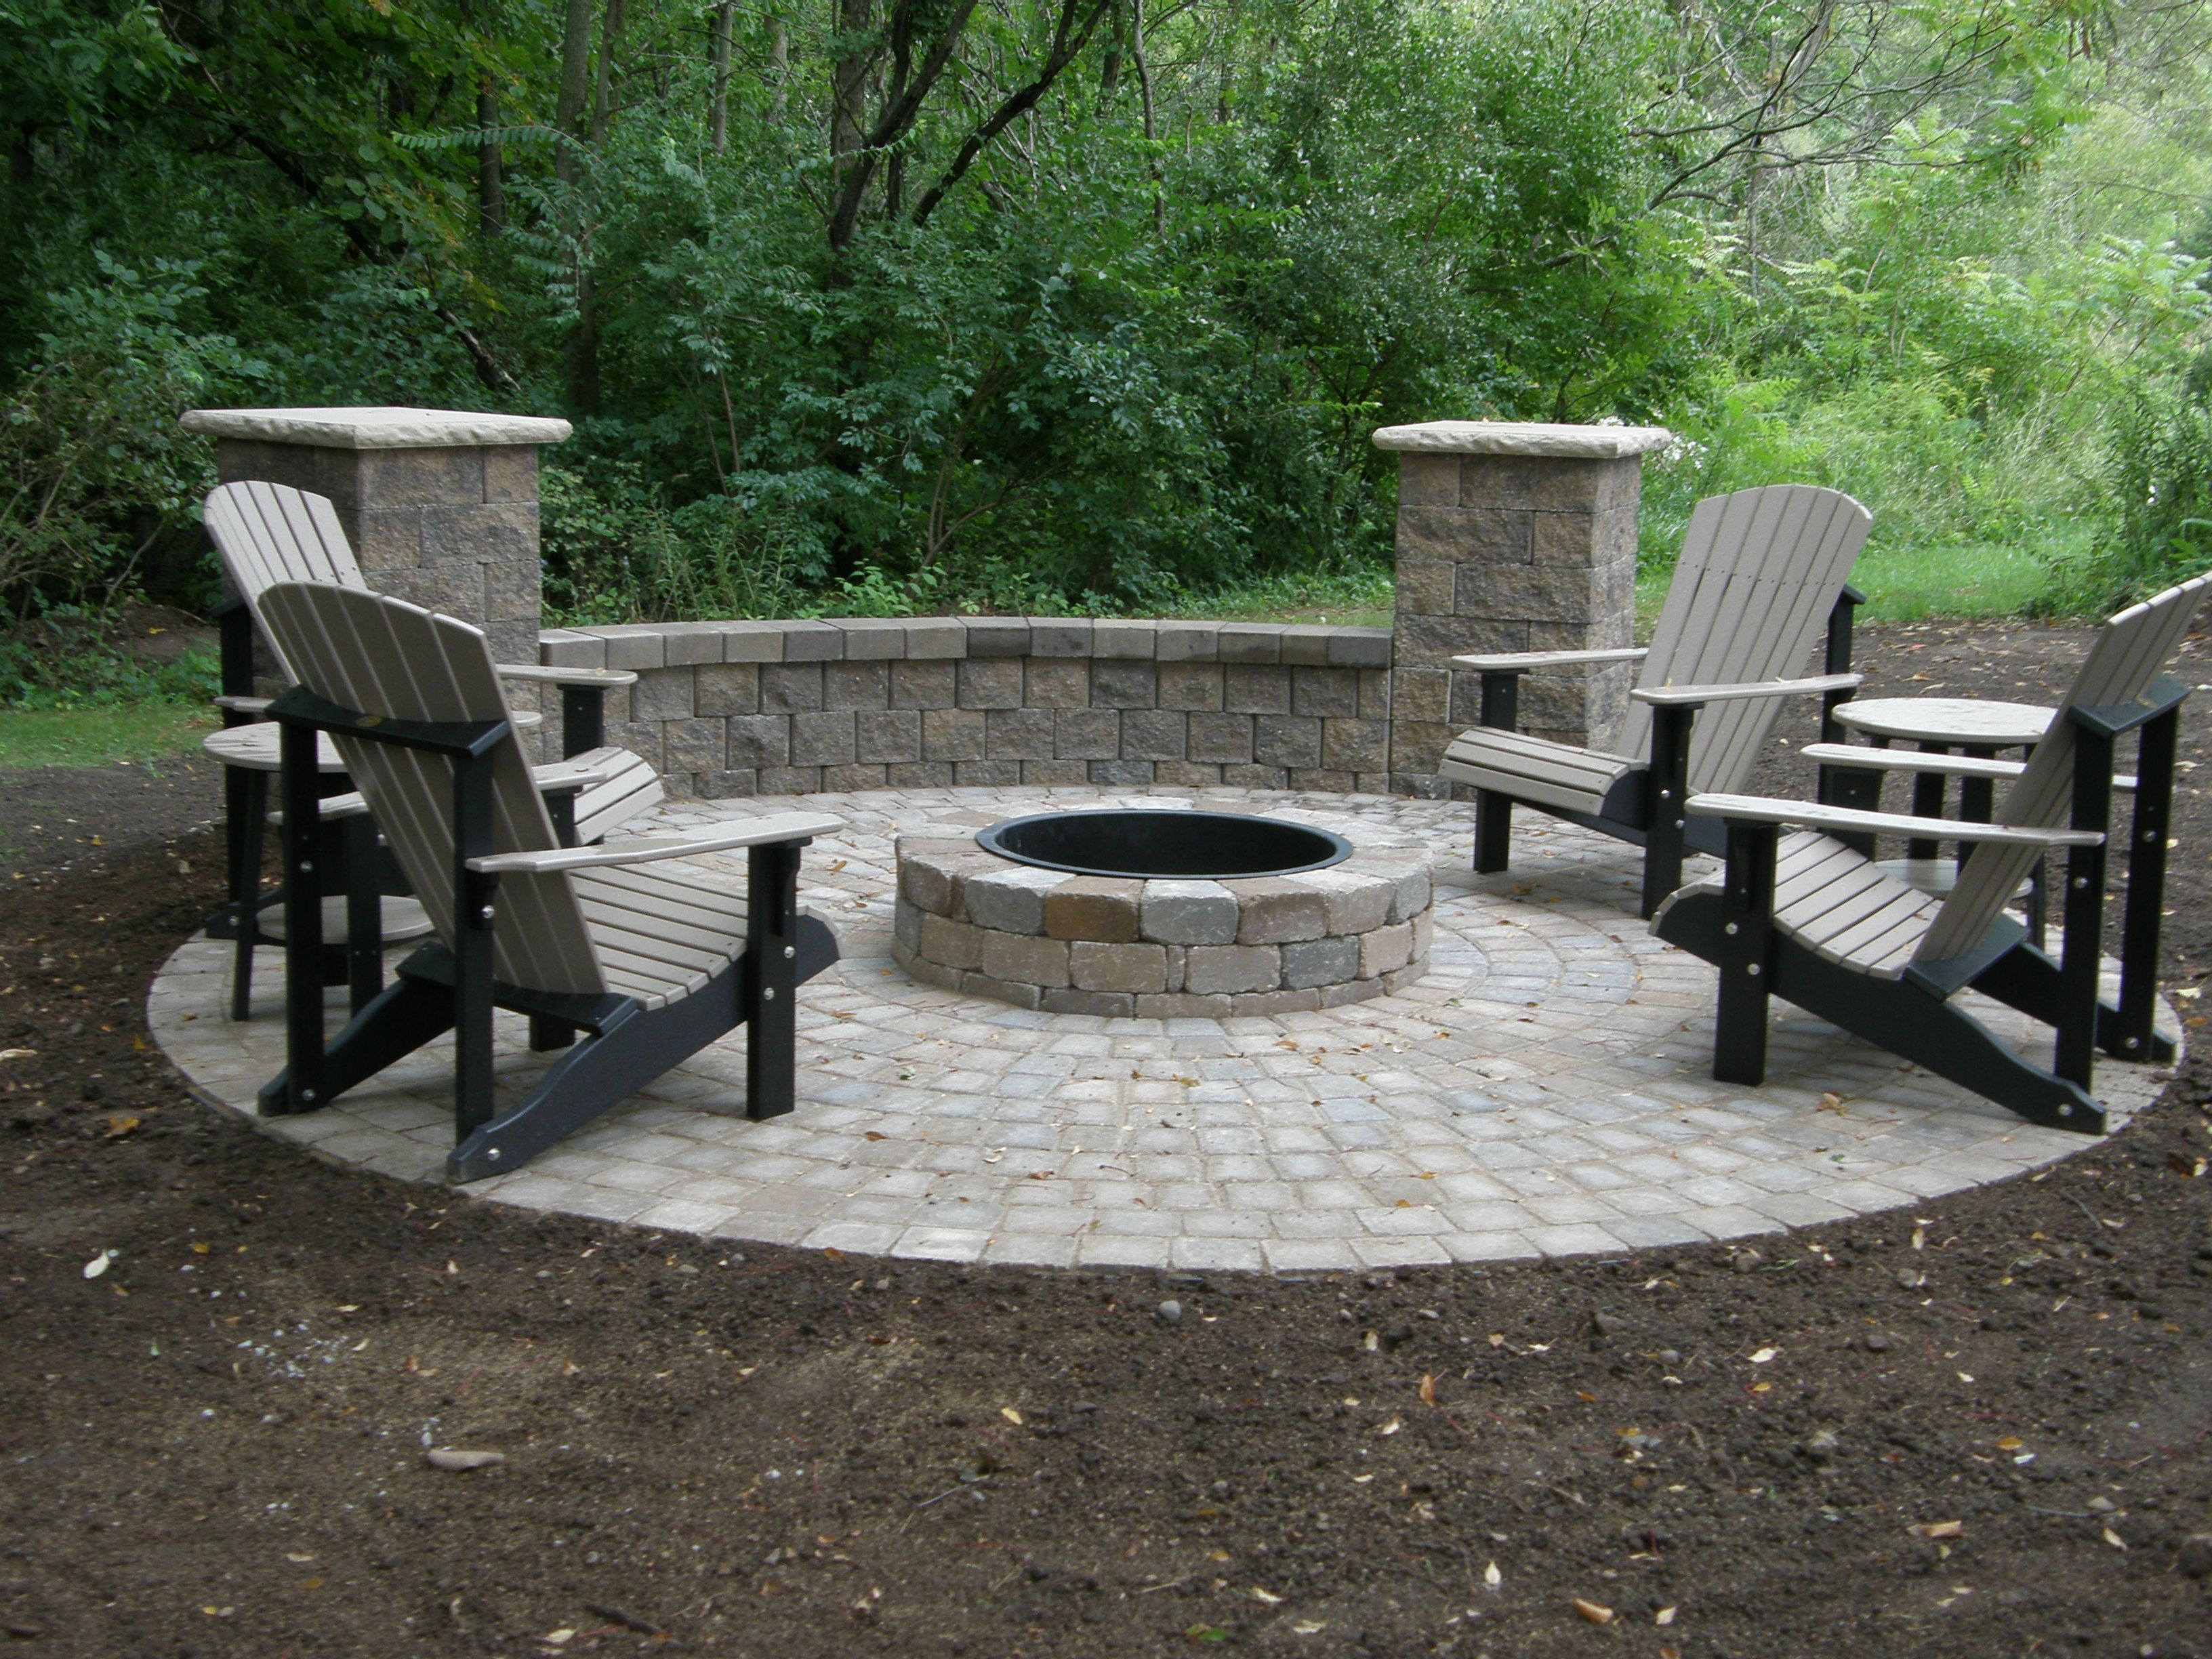 Exterior Pave Patio With Gas Fire Pit Paver Patio With Gas Fire Fire Pit Seating Area Outdoor Fire Pit Seating Paver Fire Pit